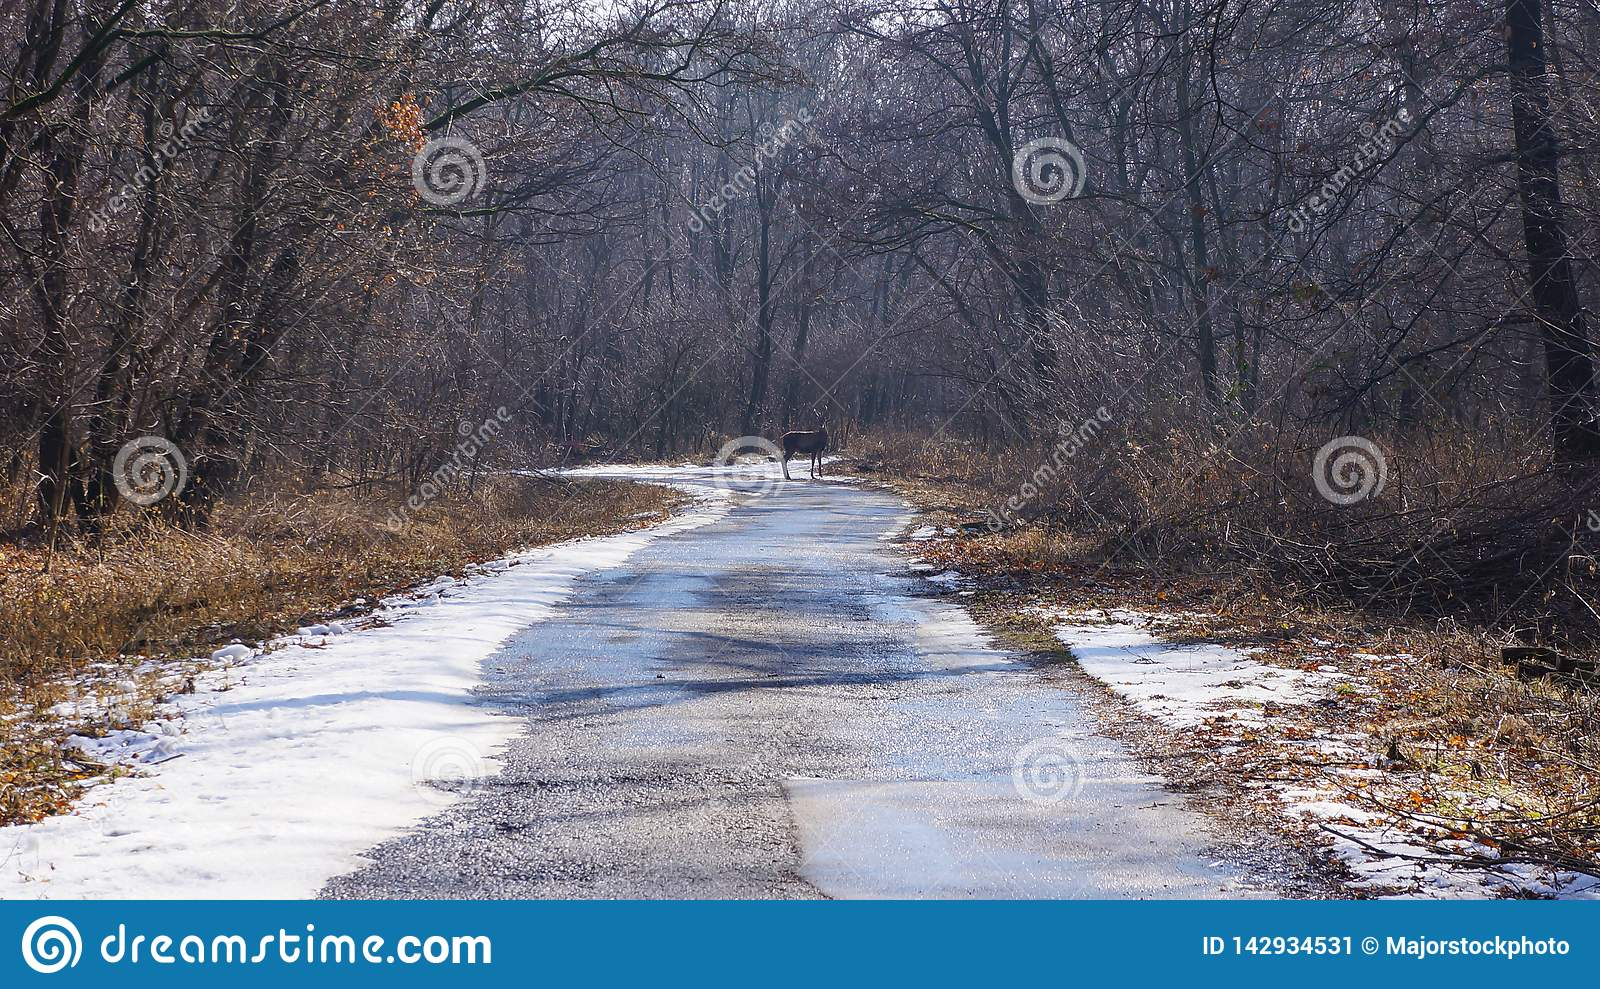 A young deer going through the road